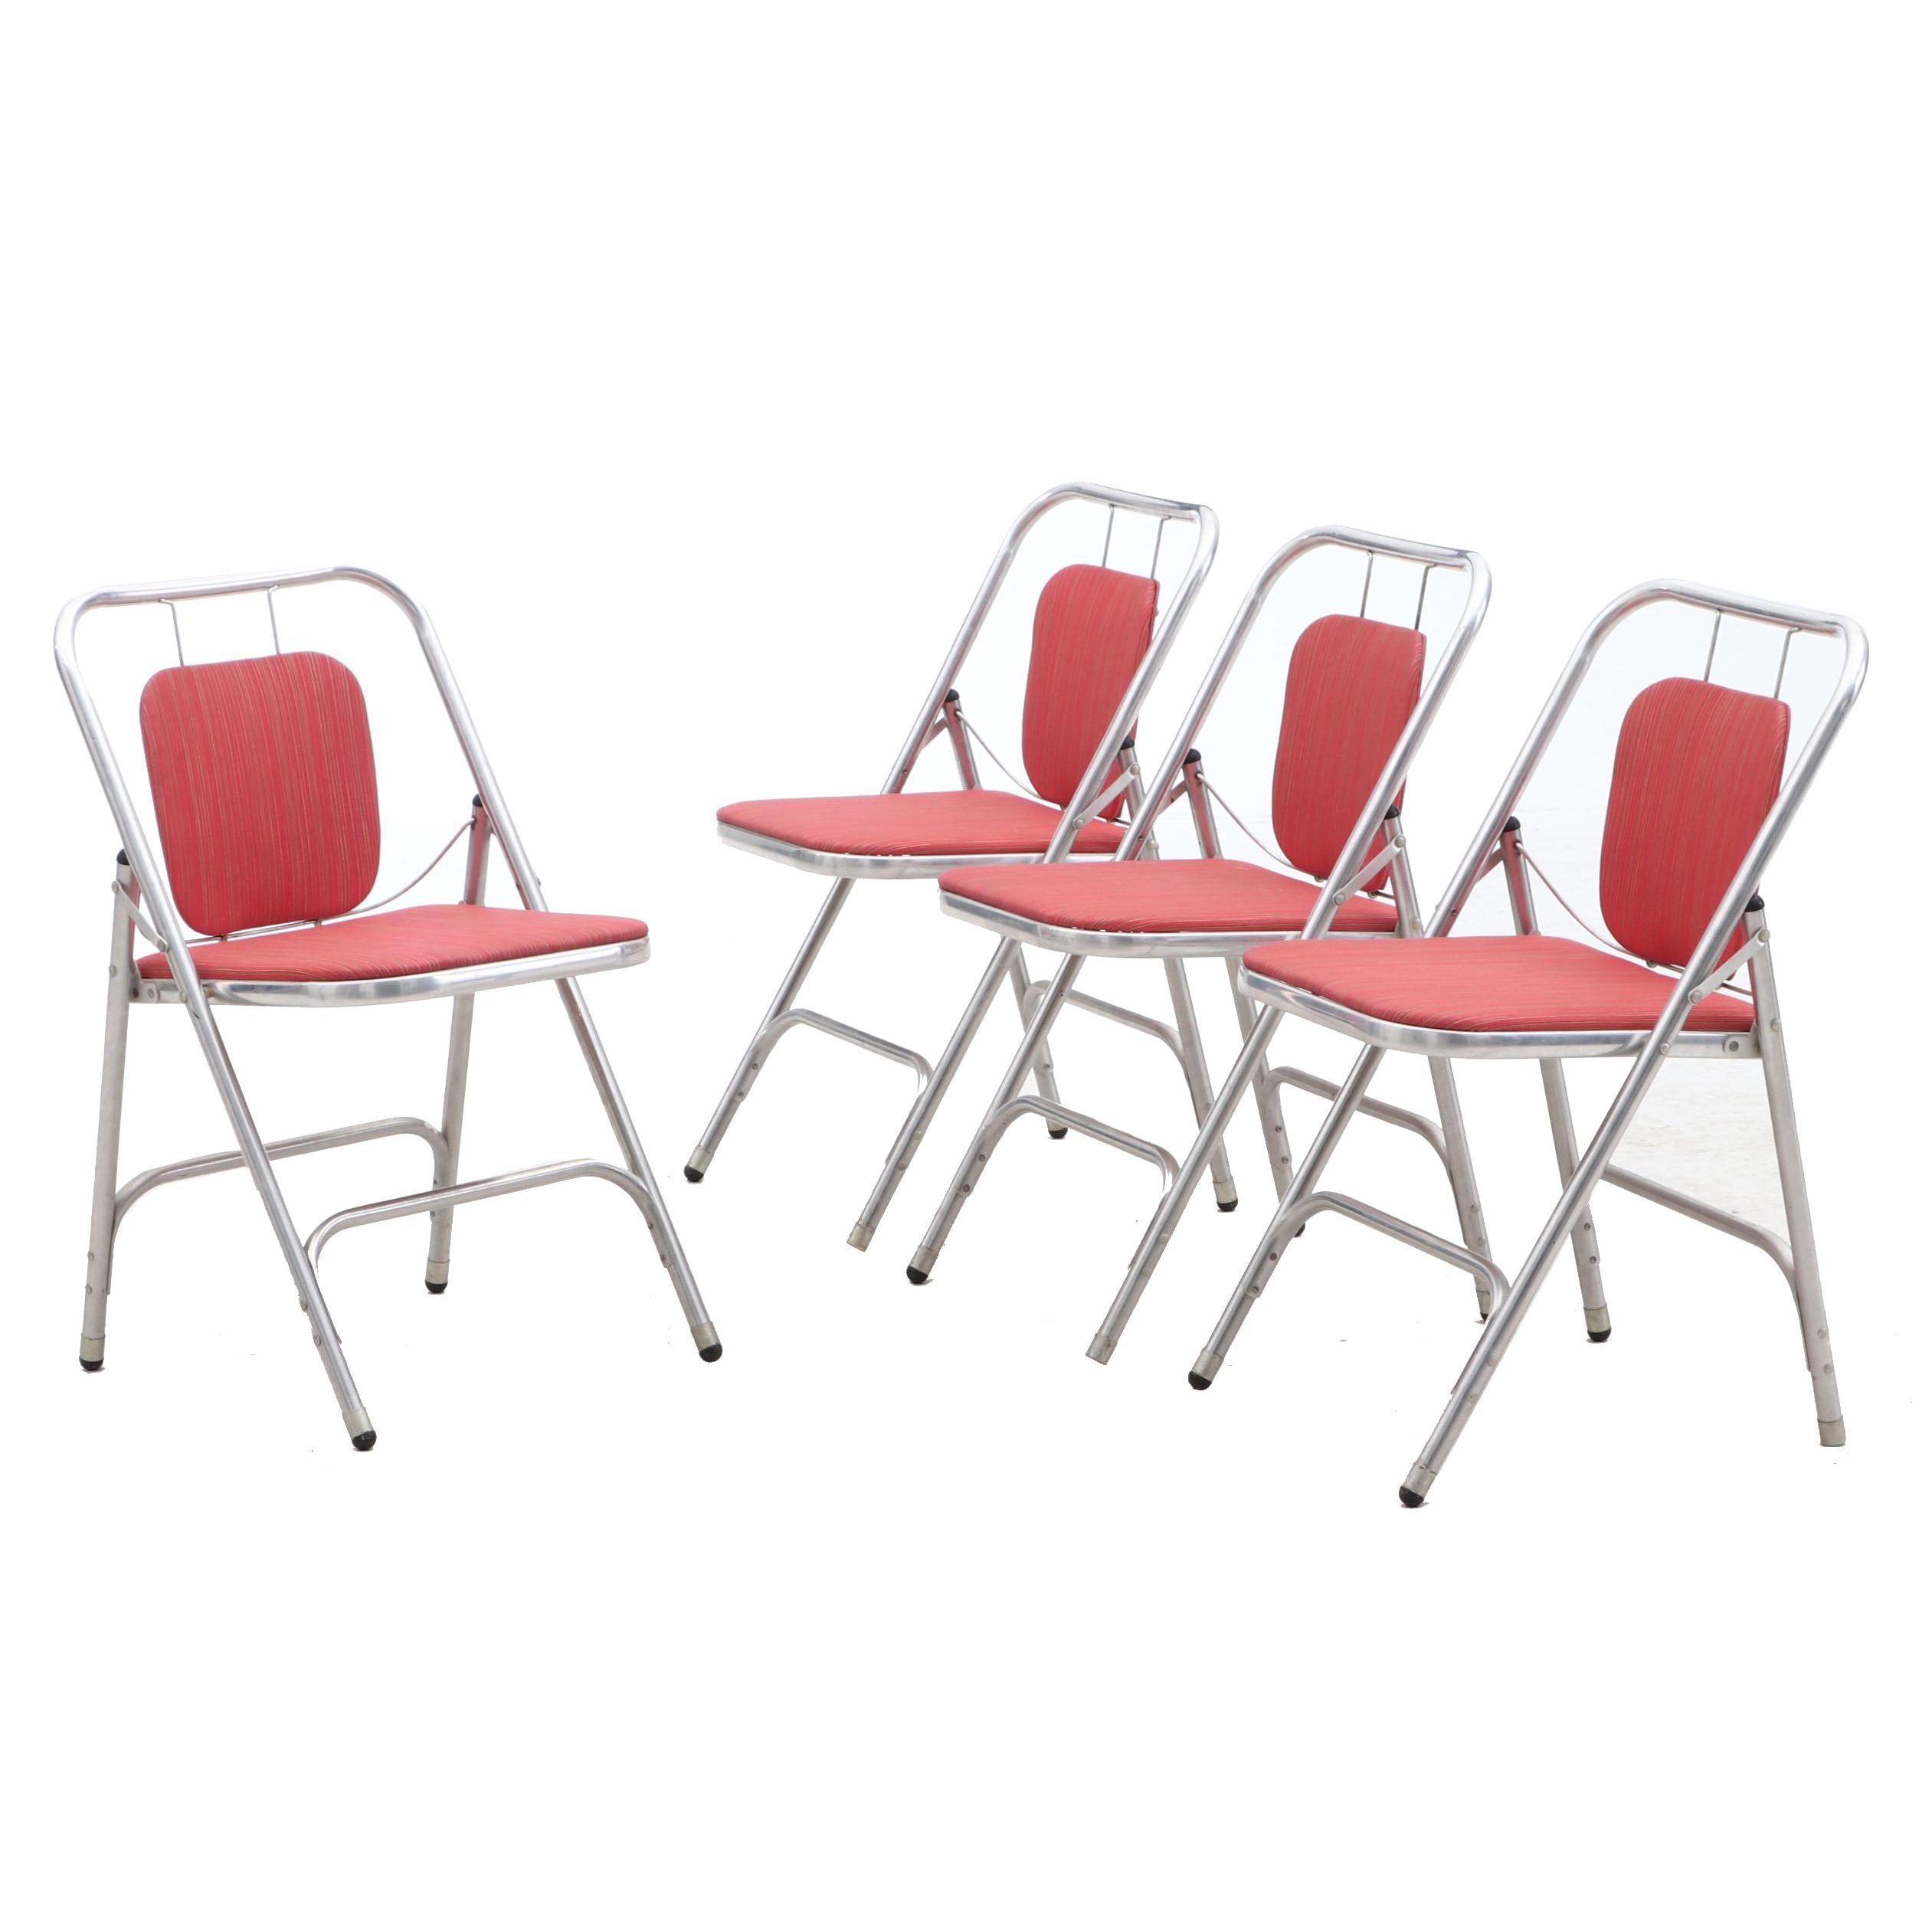 Upholstered Aluminum Framed Folding Chairs by Shott Aluminum Furniture